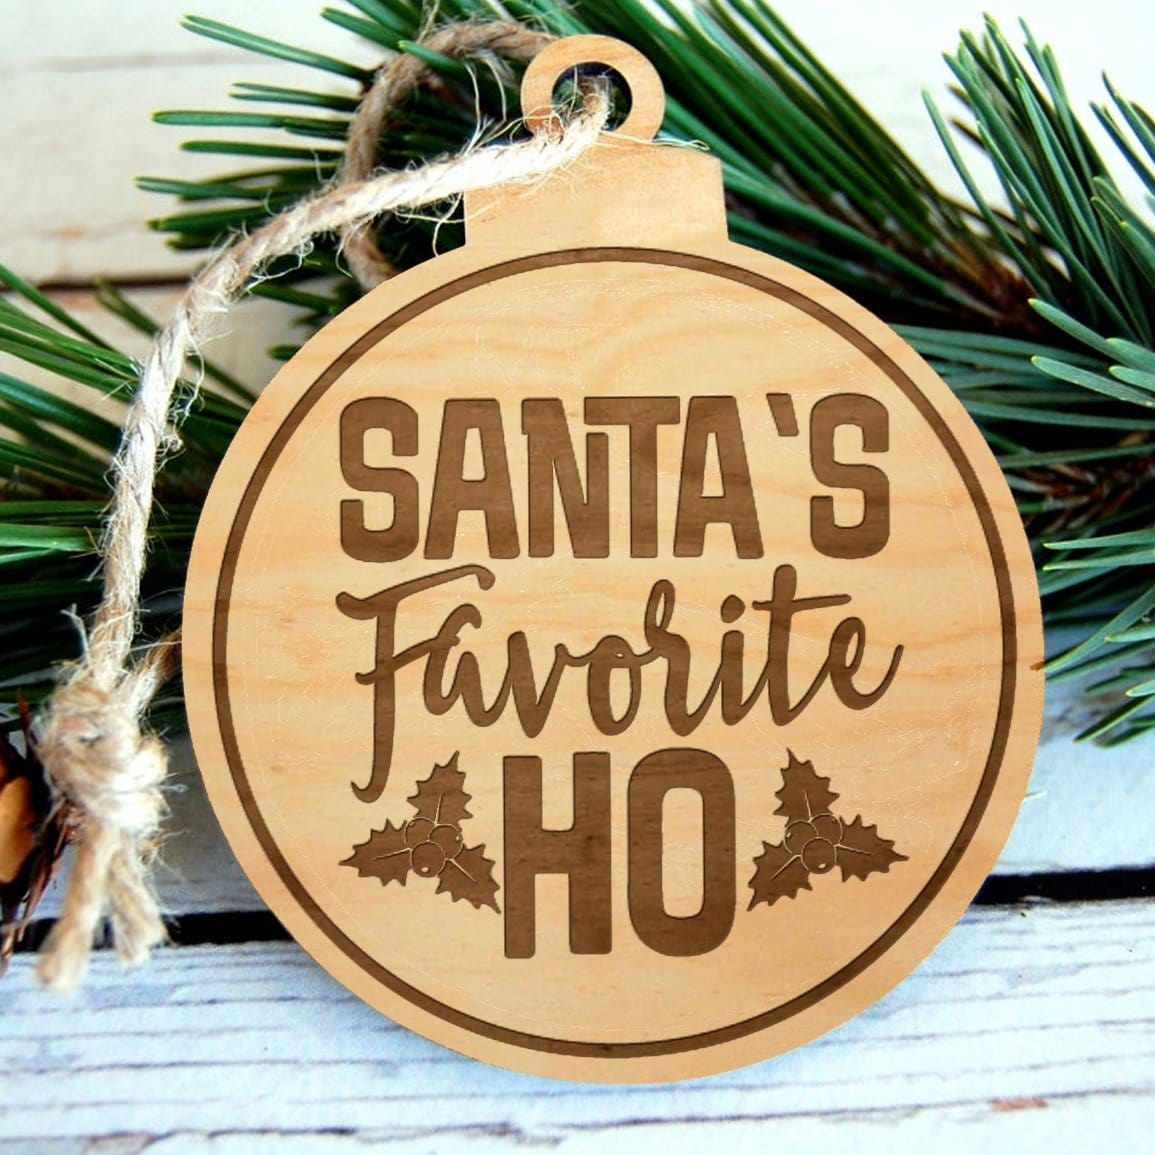 Santa's Favorite Ho Laser Engraved Wooden Christmas Ornament